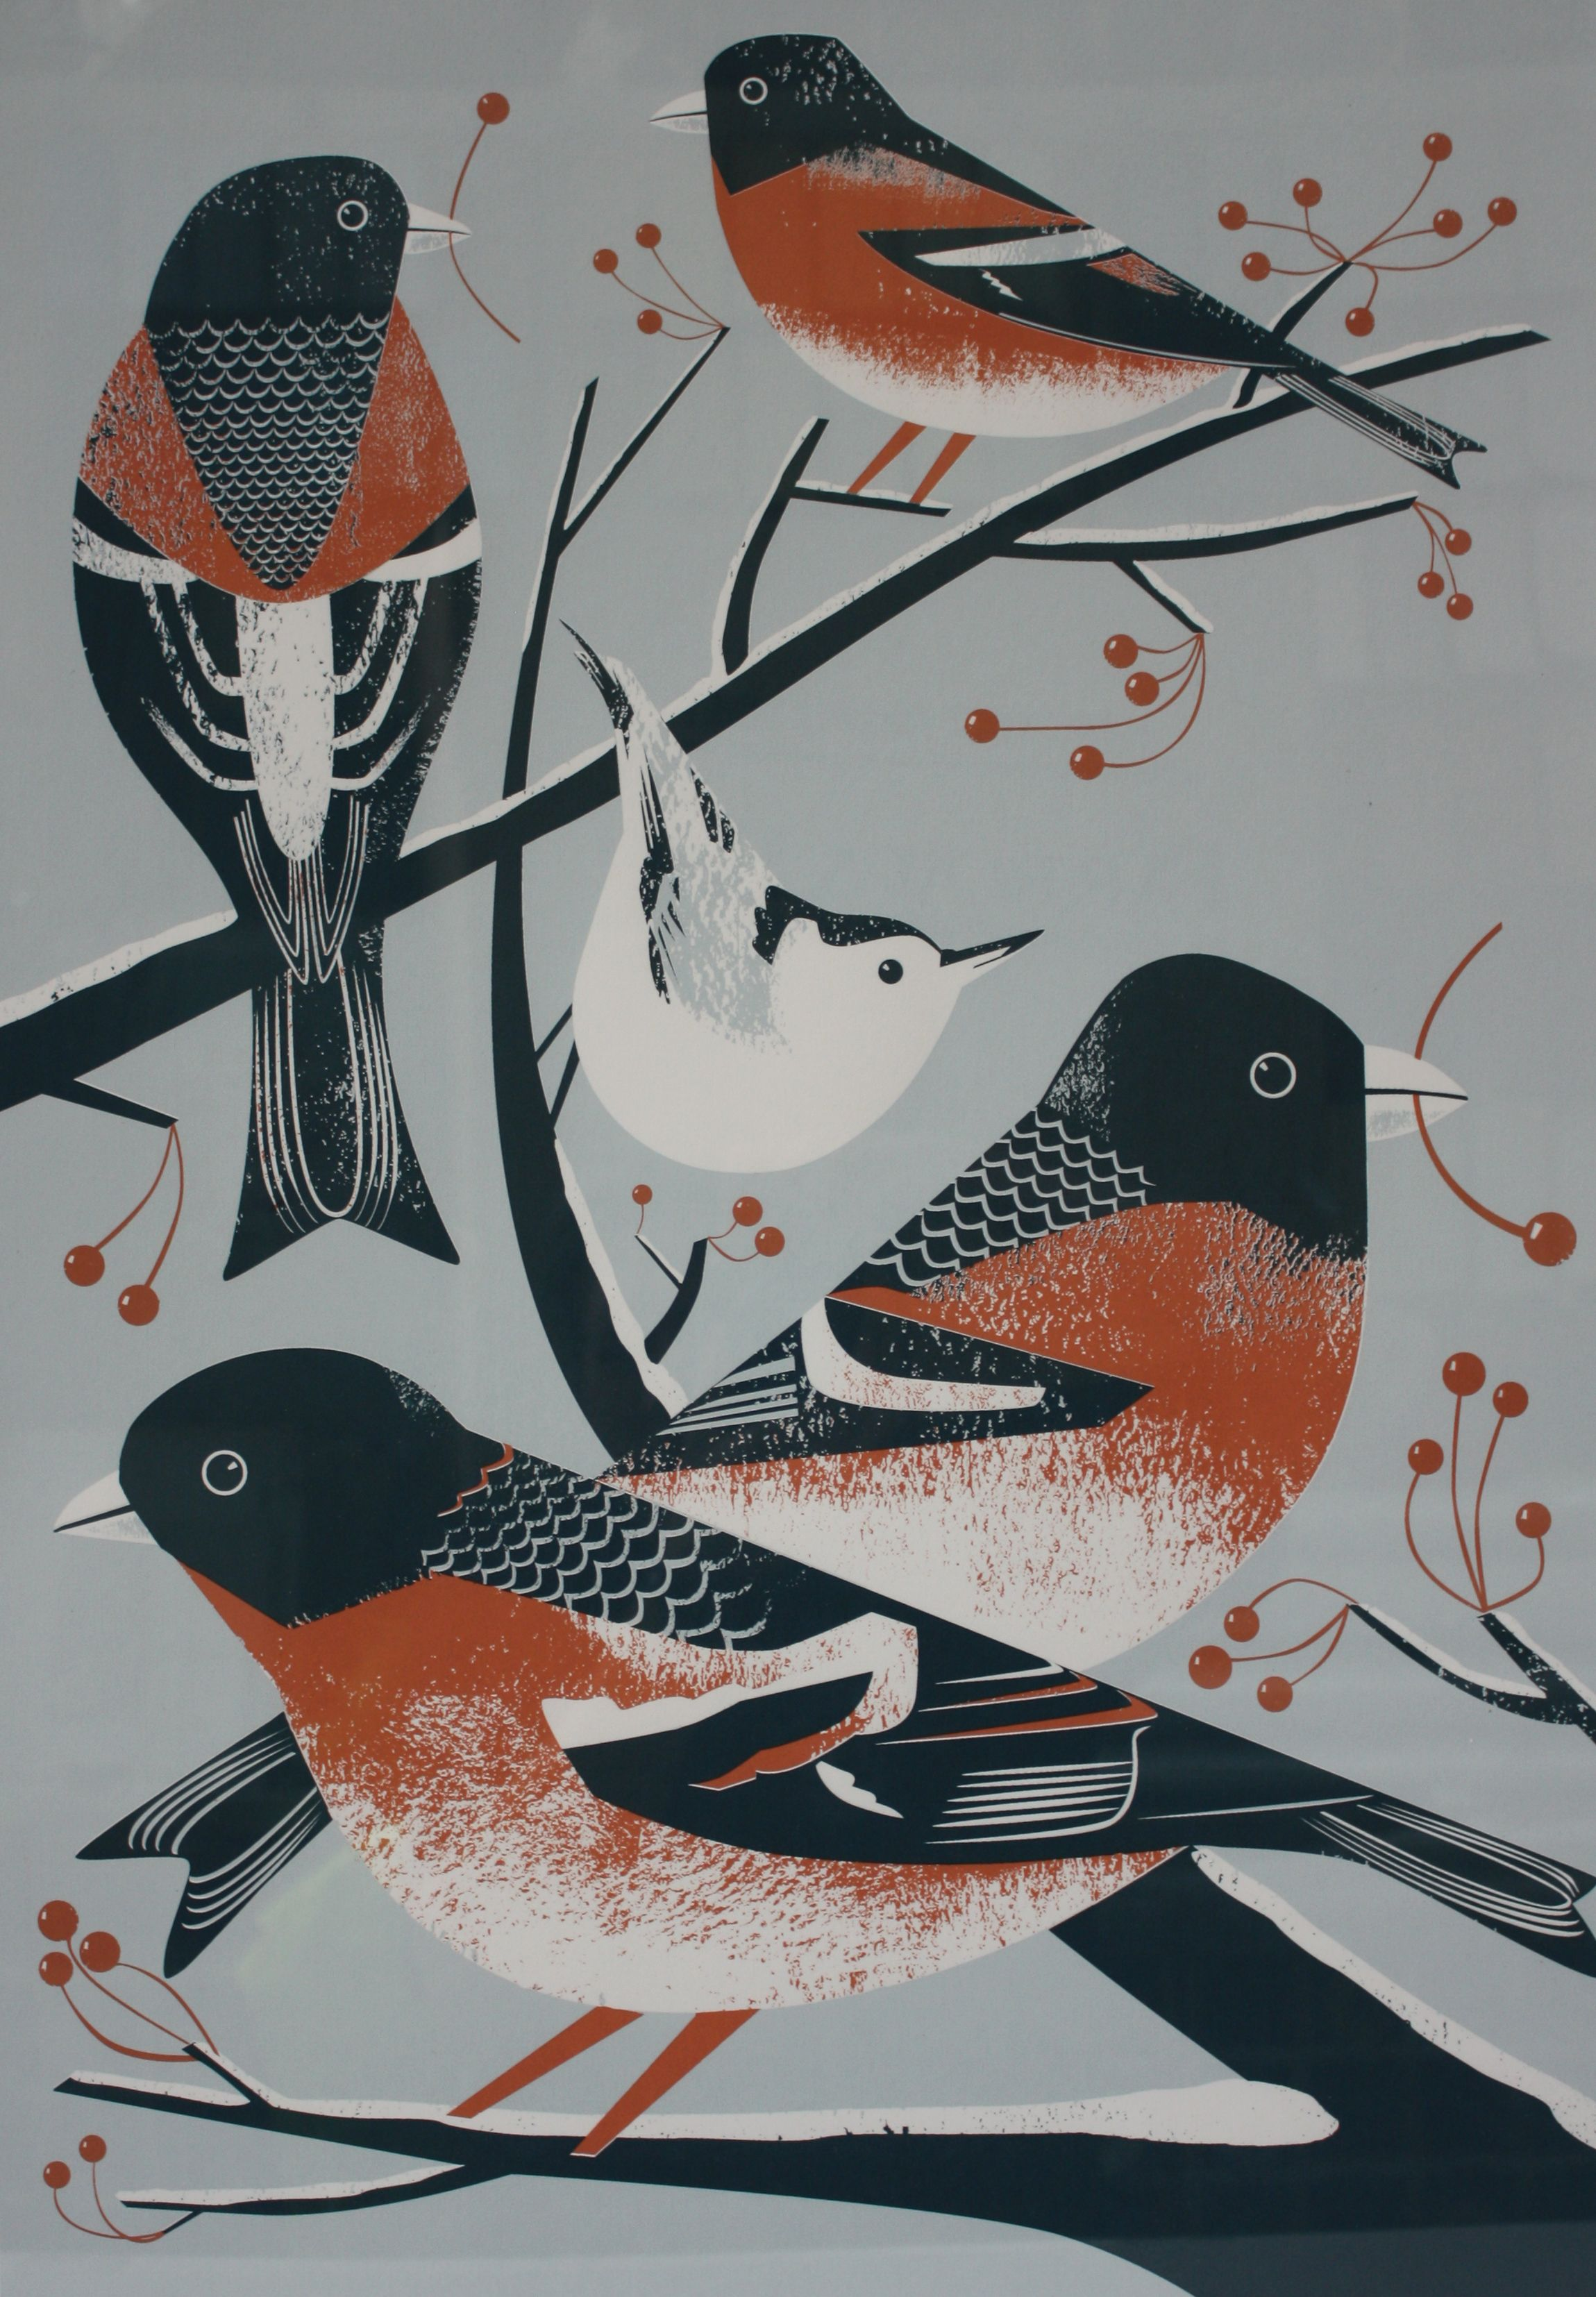 BRAMBLINGS AND A NUTHATCH created by artist Chris Andrews using Farrow & Ball paint (Red Earth, Parma Gray and Hague Blue)